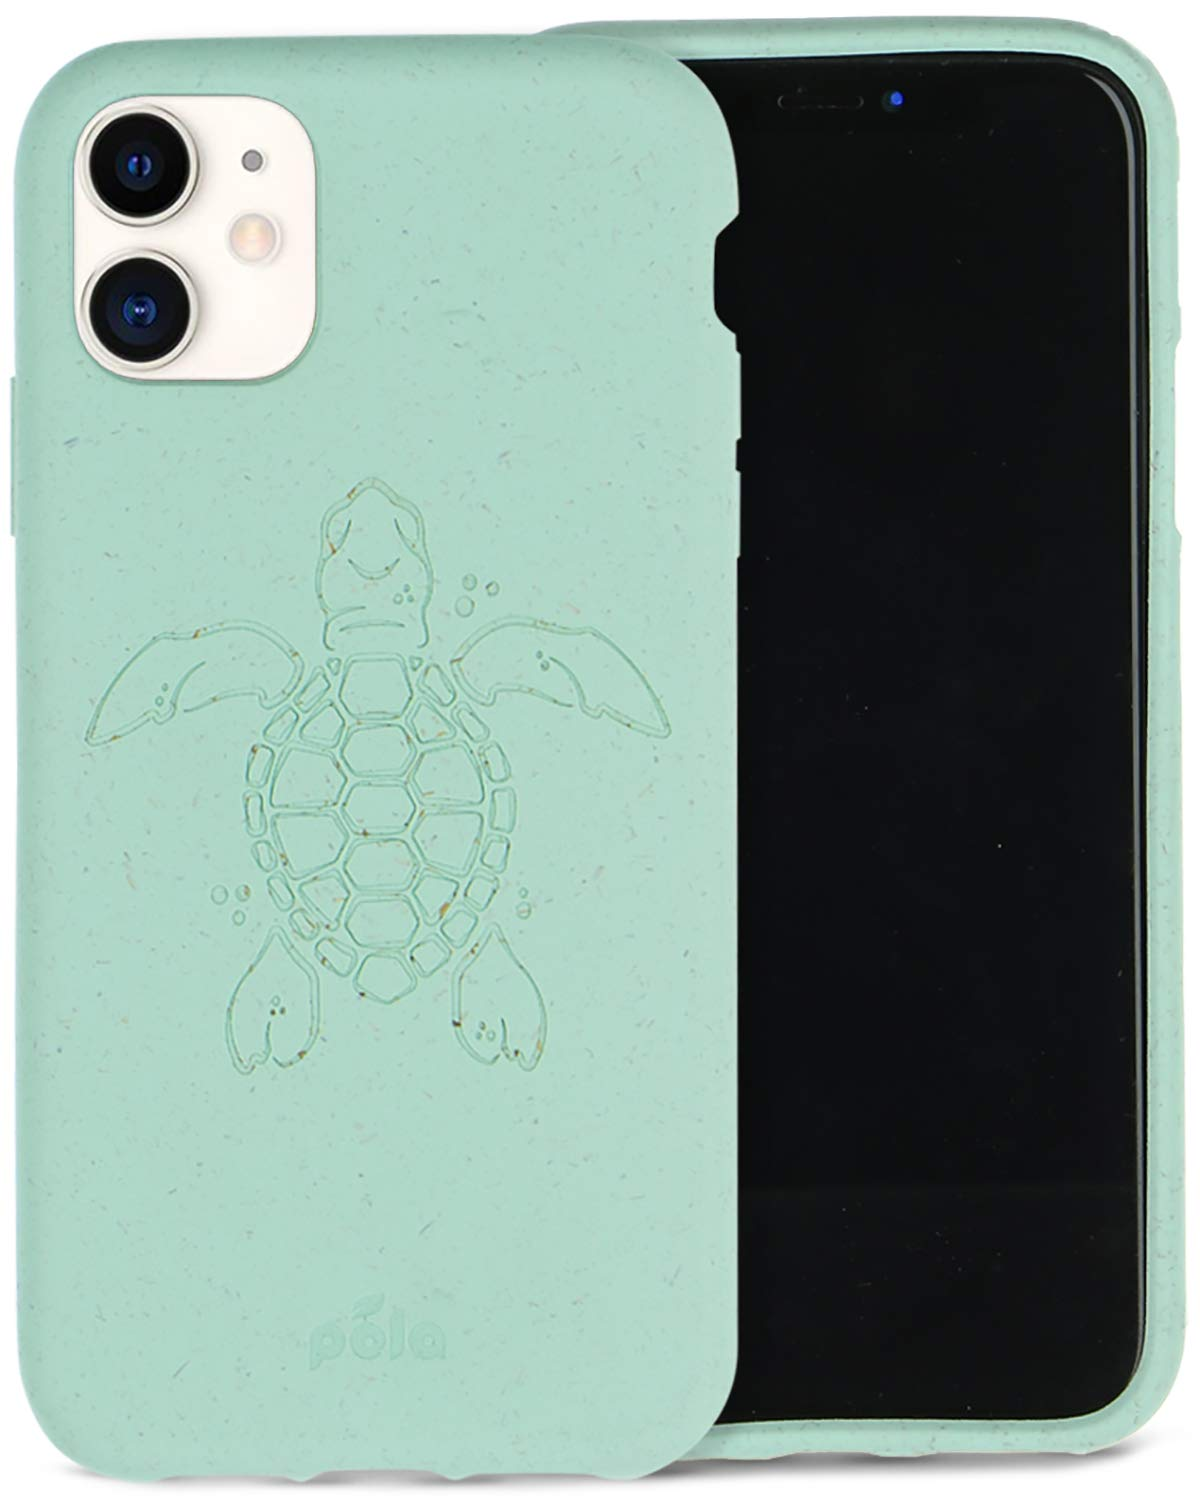 Pela: Phone Case for iPhone 11-100% Compostable and Biodegradable - Eco-Friendly - Made from Plants (11 Ocean Turtle)